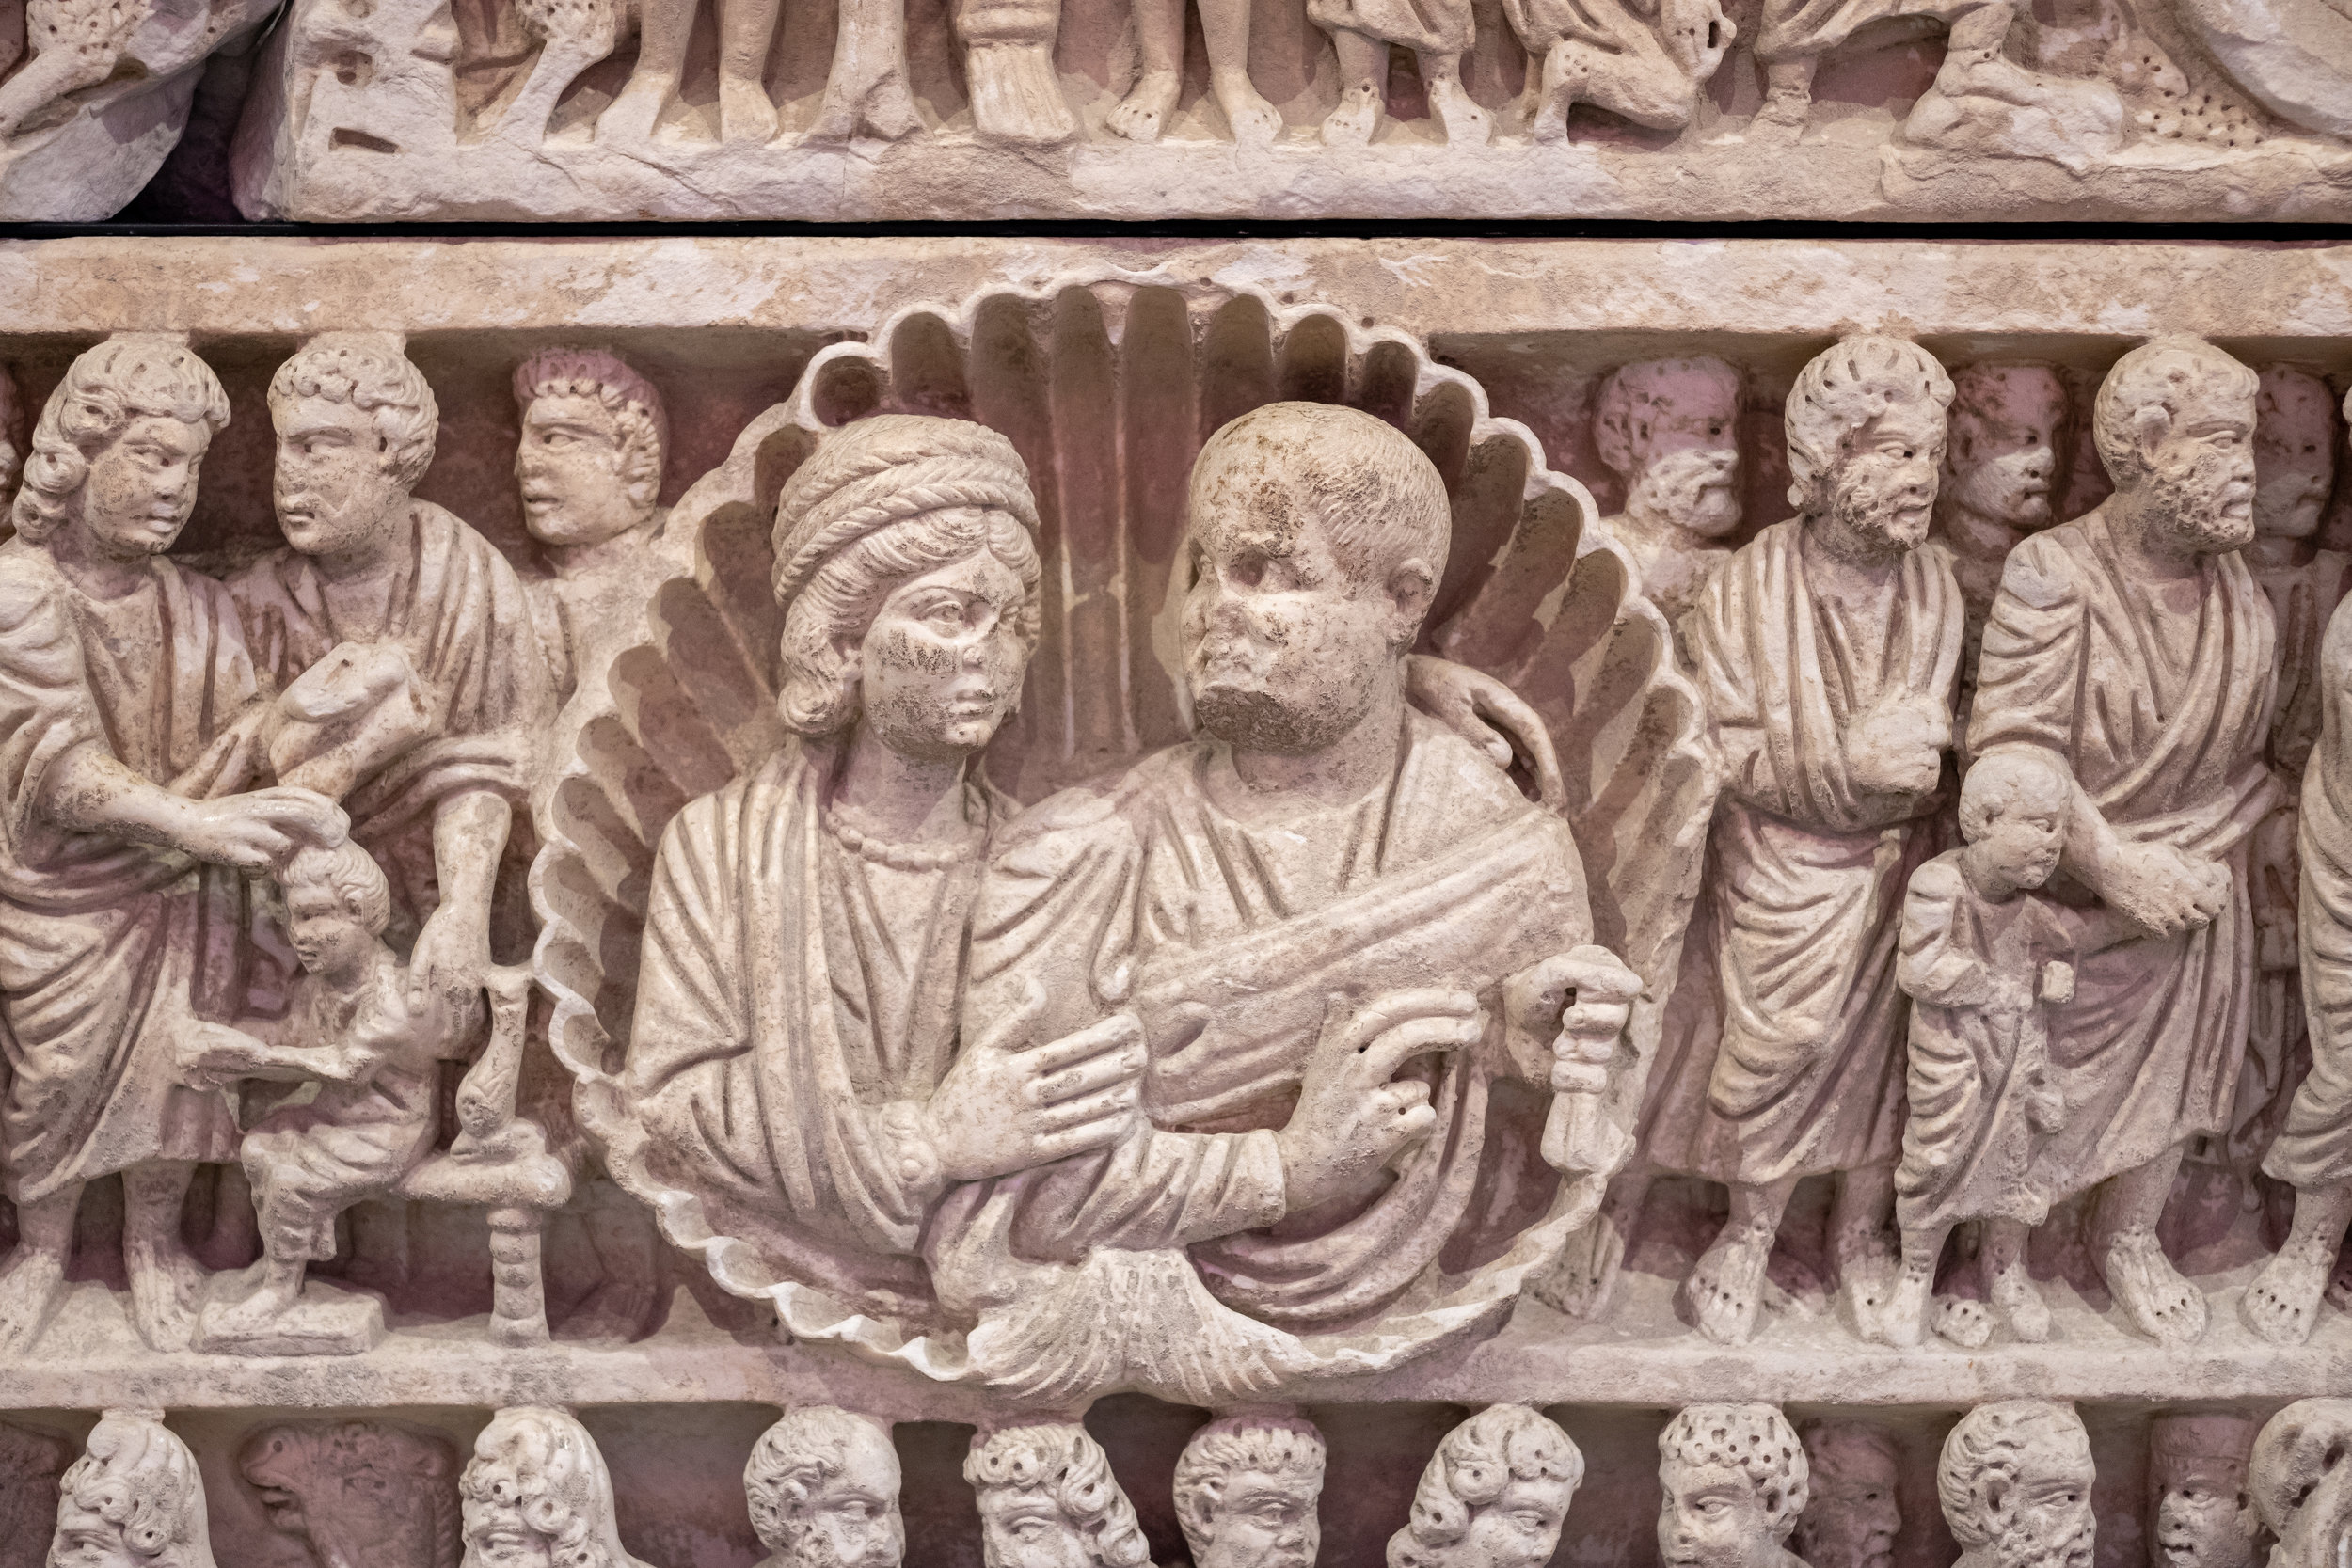 3rd C Sarcophagus, Musée Départmental de l'Arles Antique, Arles, France